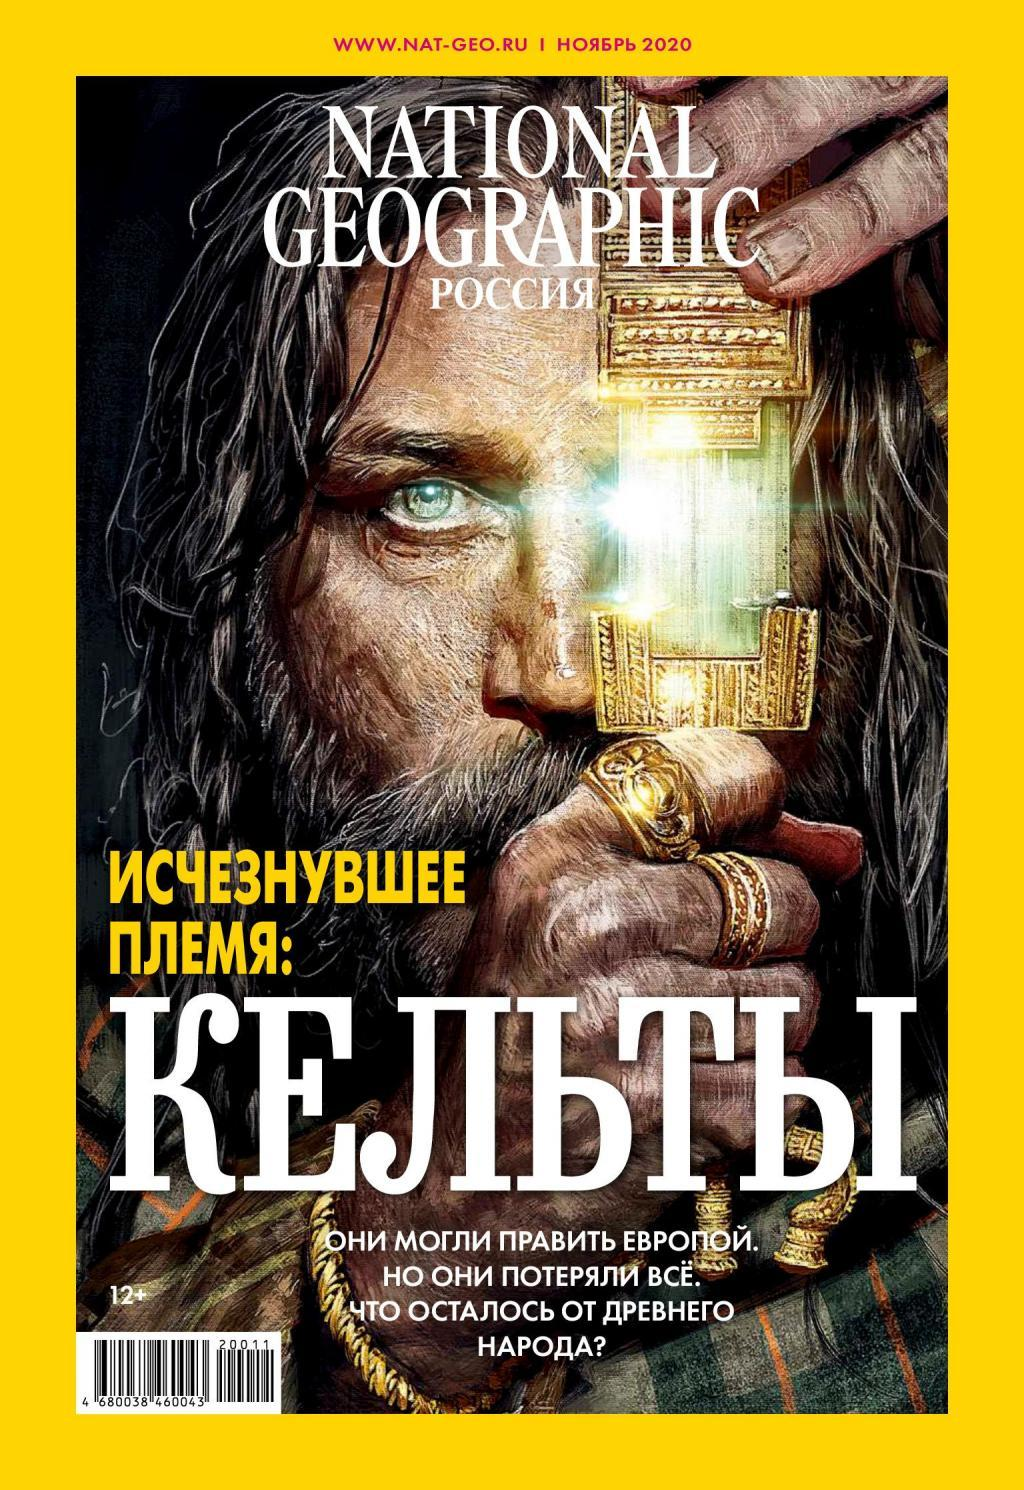 National Geographic №11, ноябрь 2020